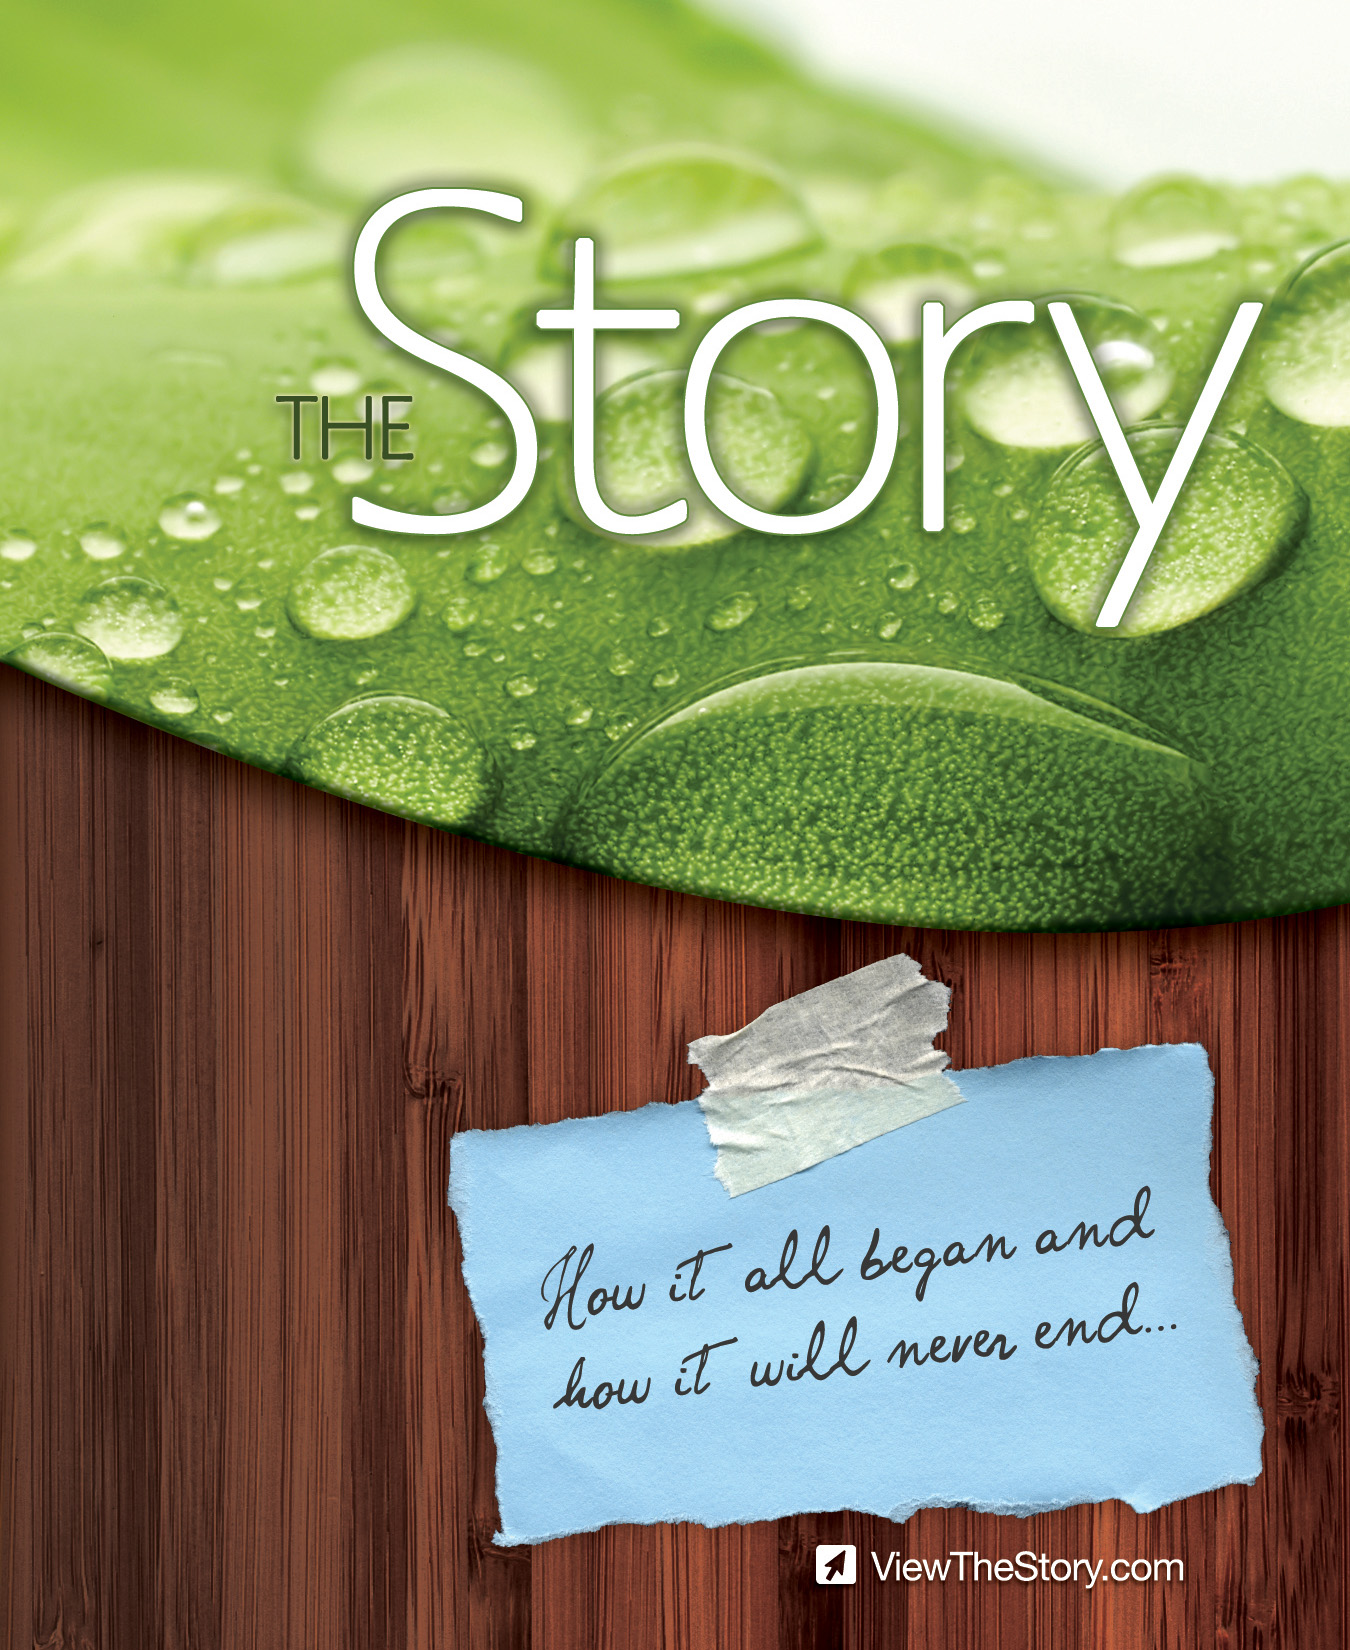 """Want to learn more about following Jesus? Click on """"The Story""""."""